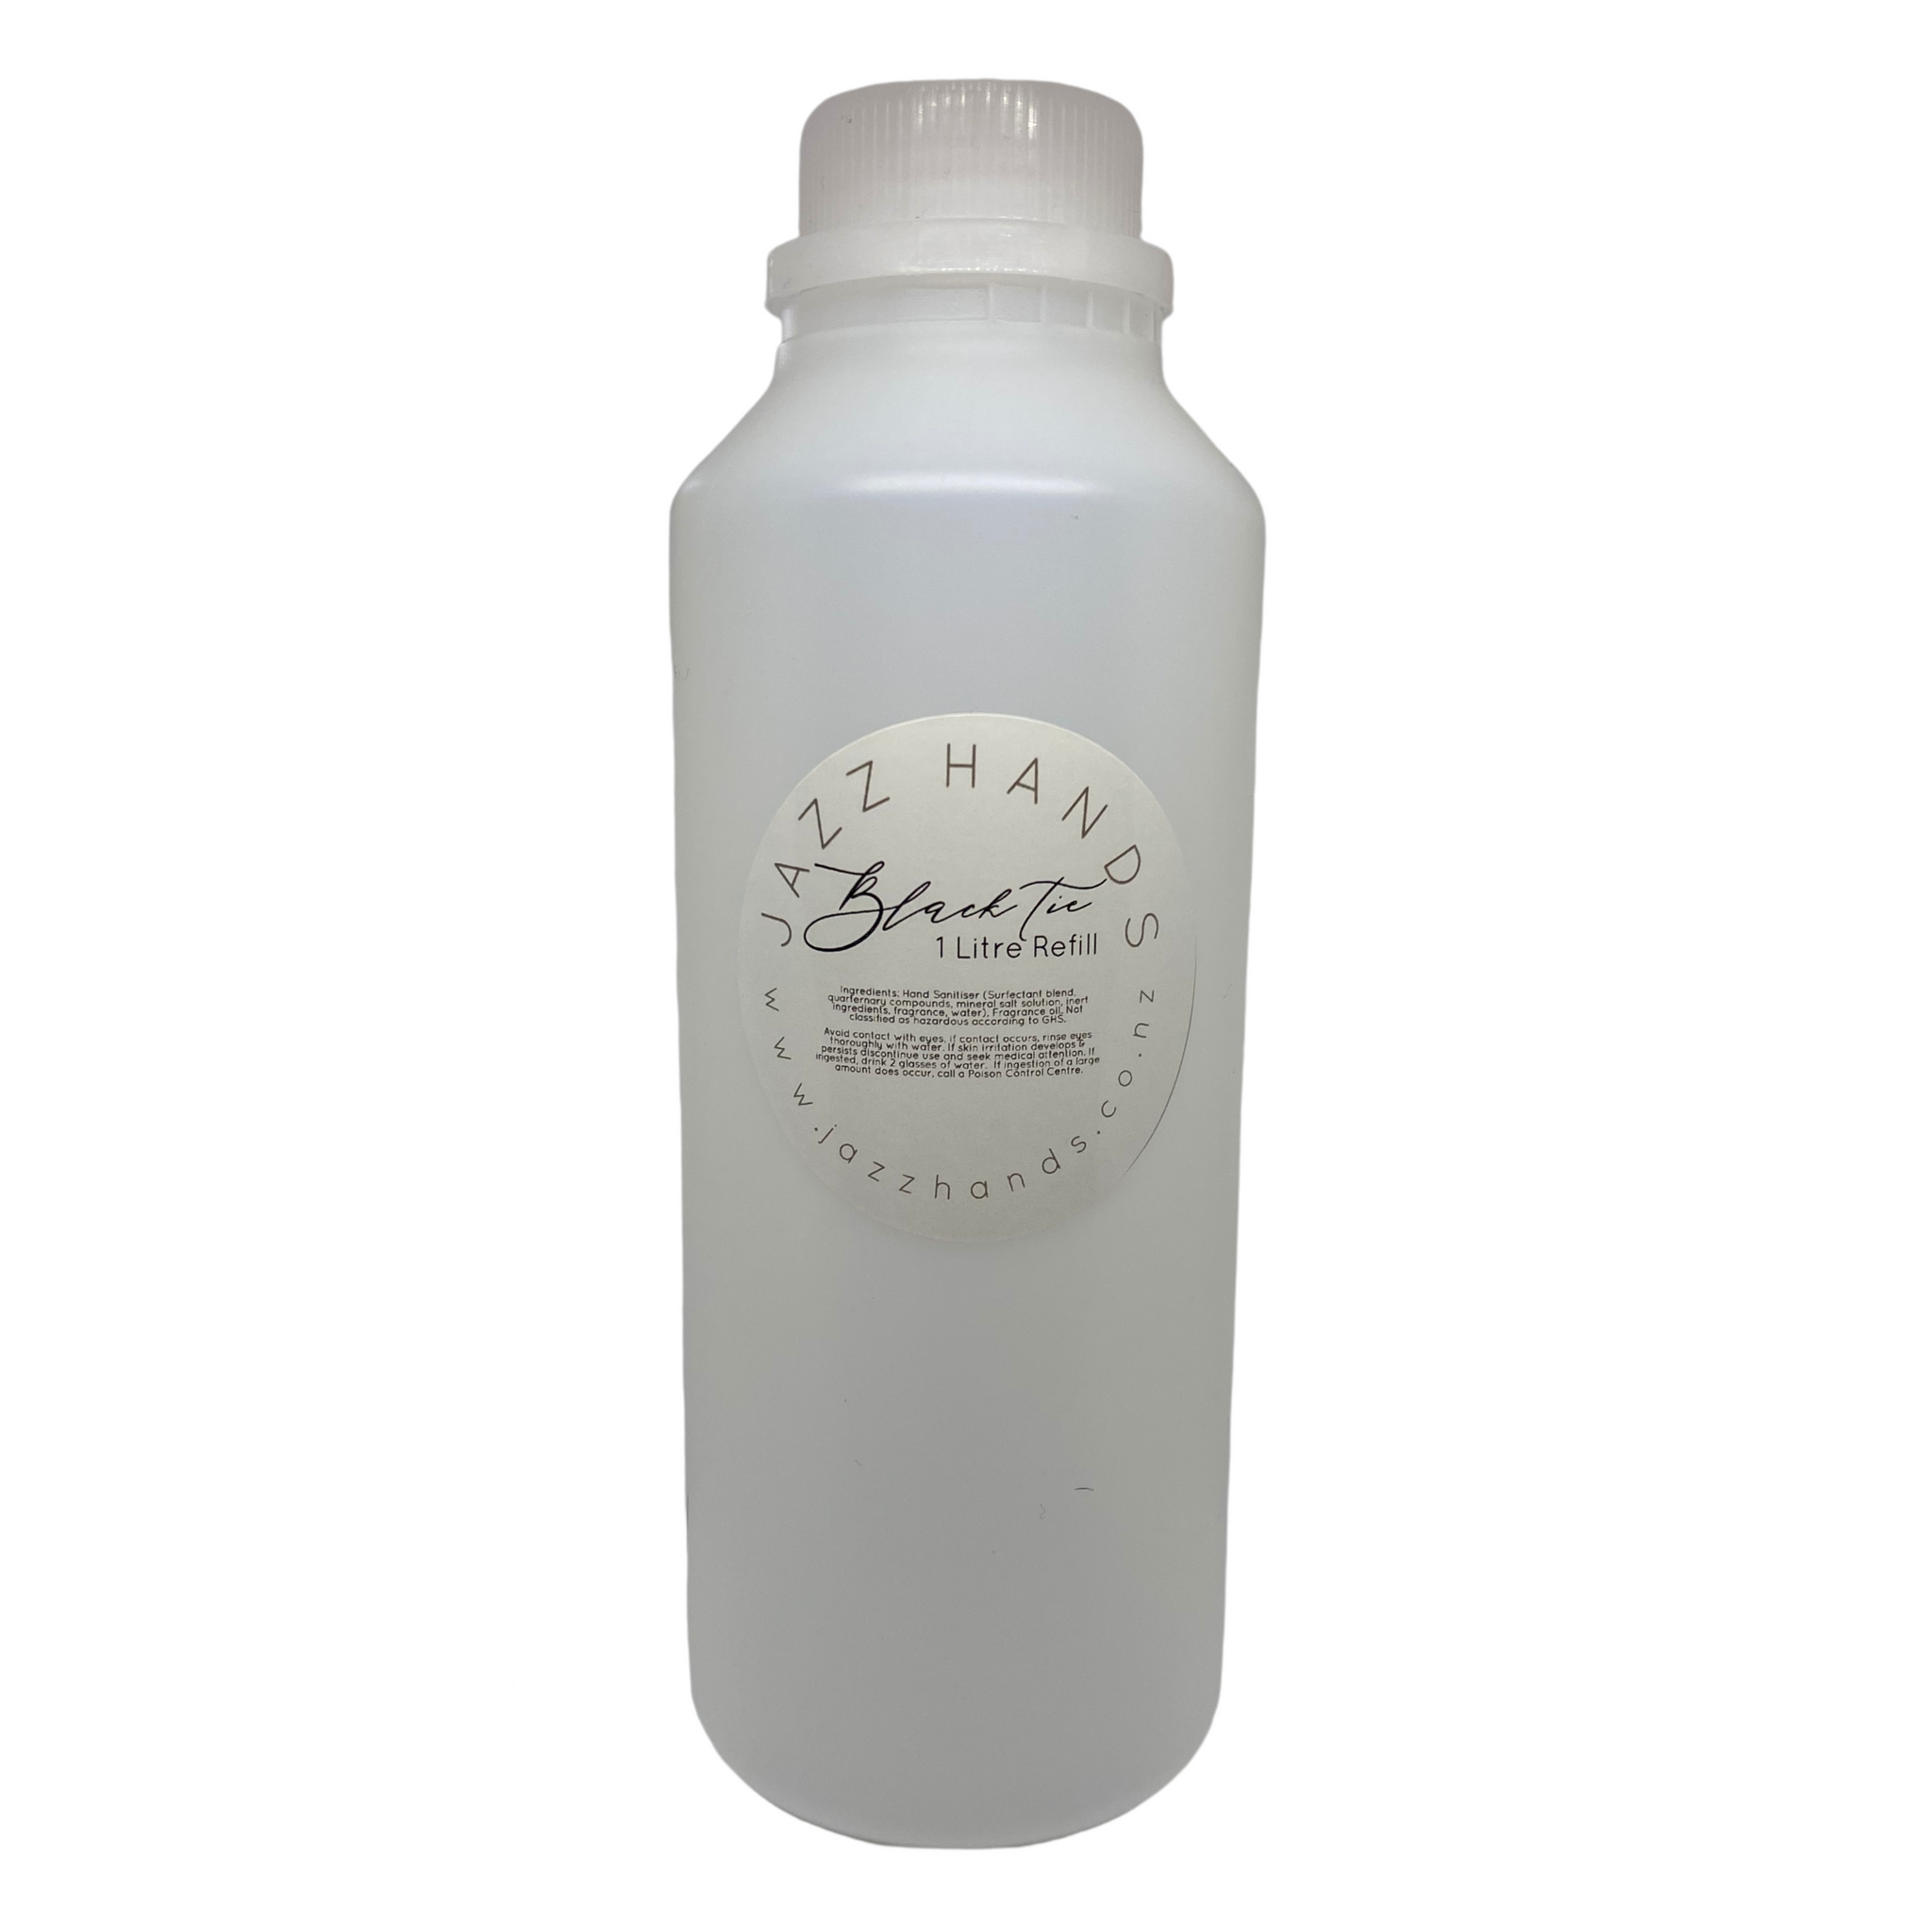 Black Tie Scented - (Alcohol Free) 1 Litre Refill